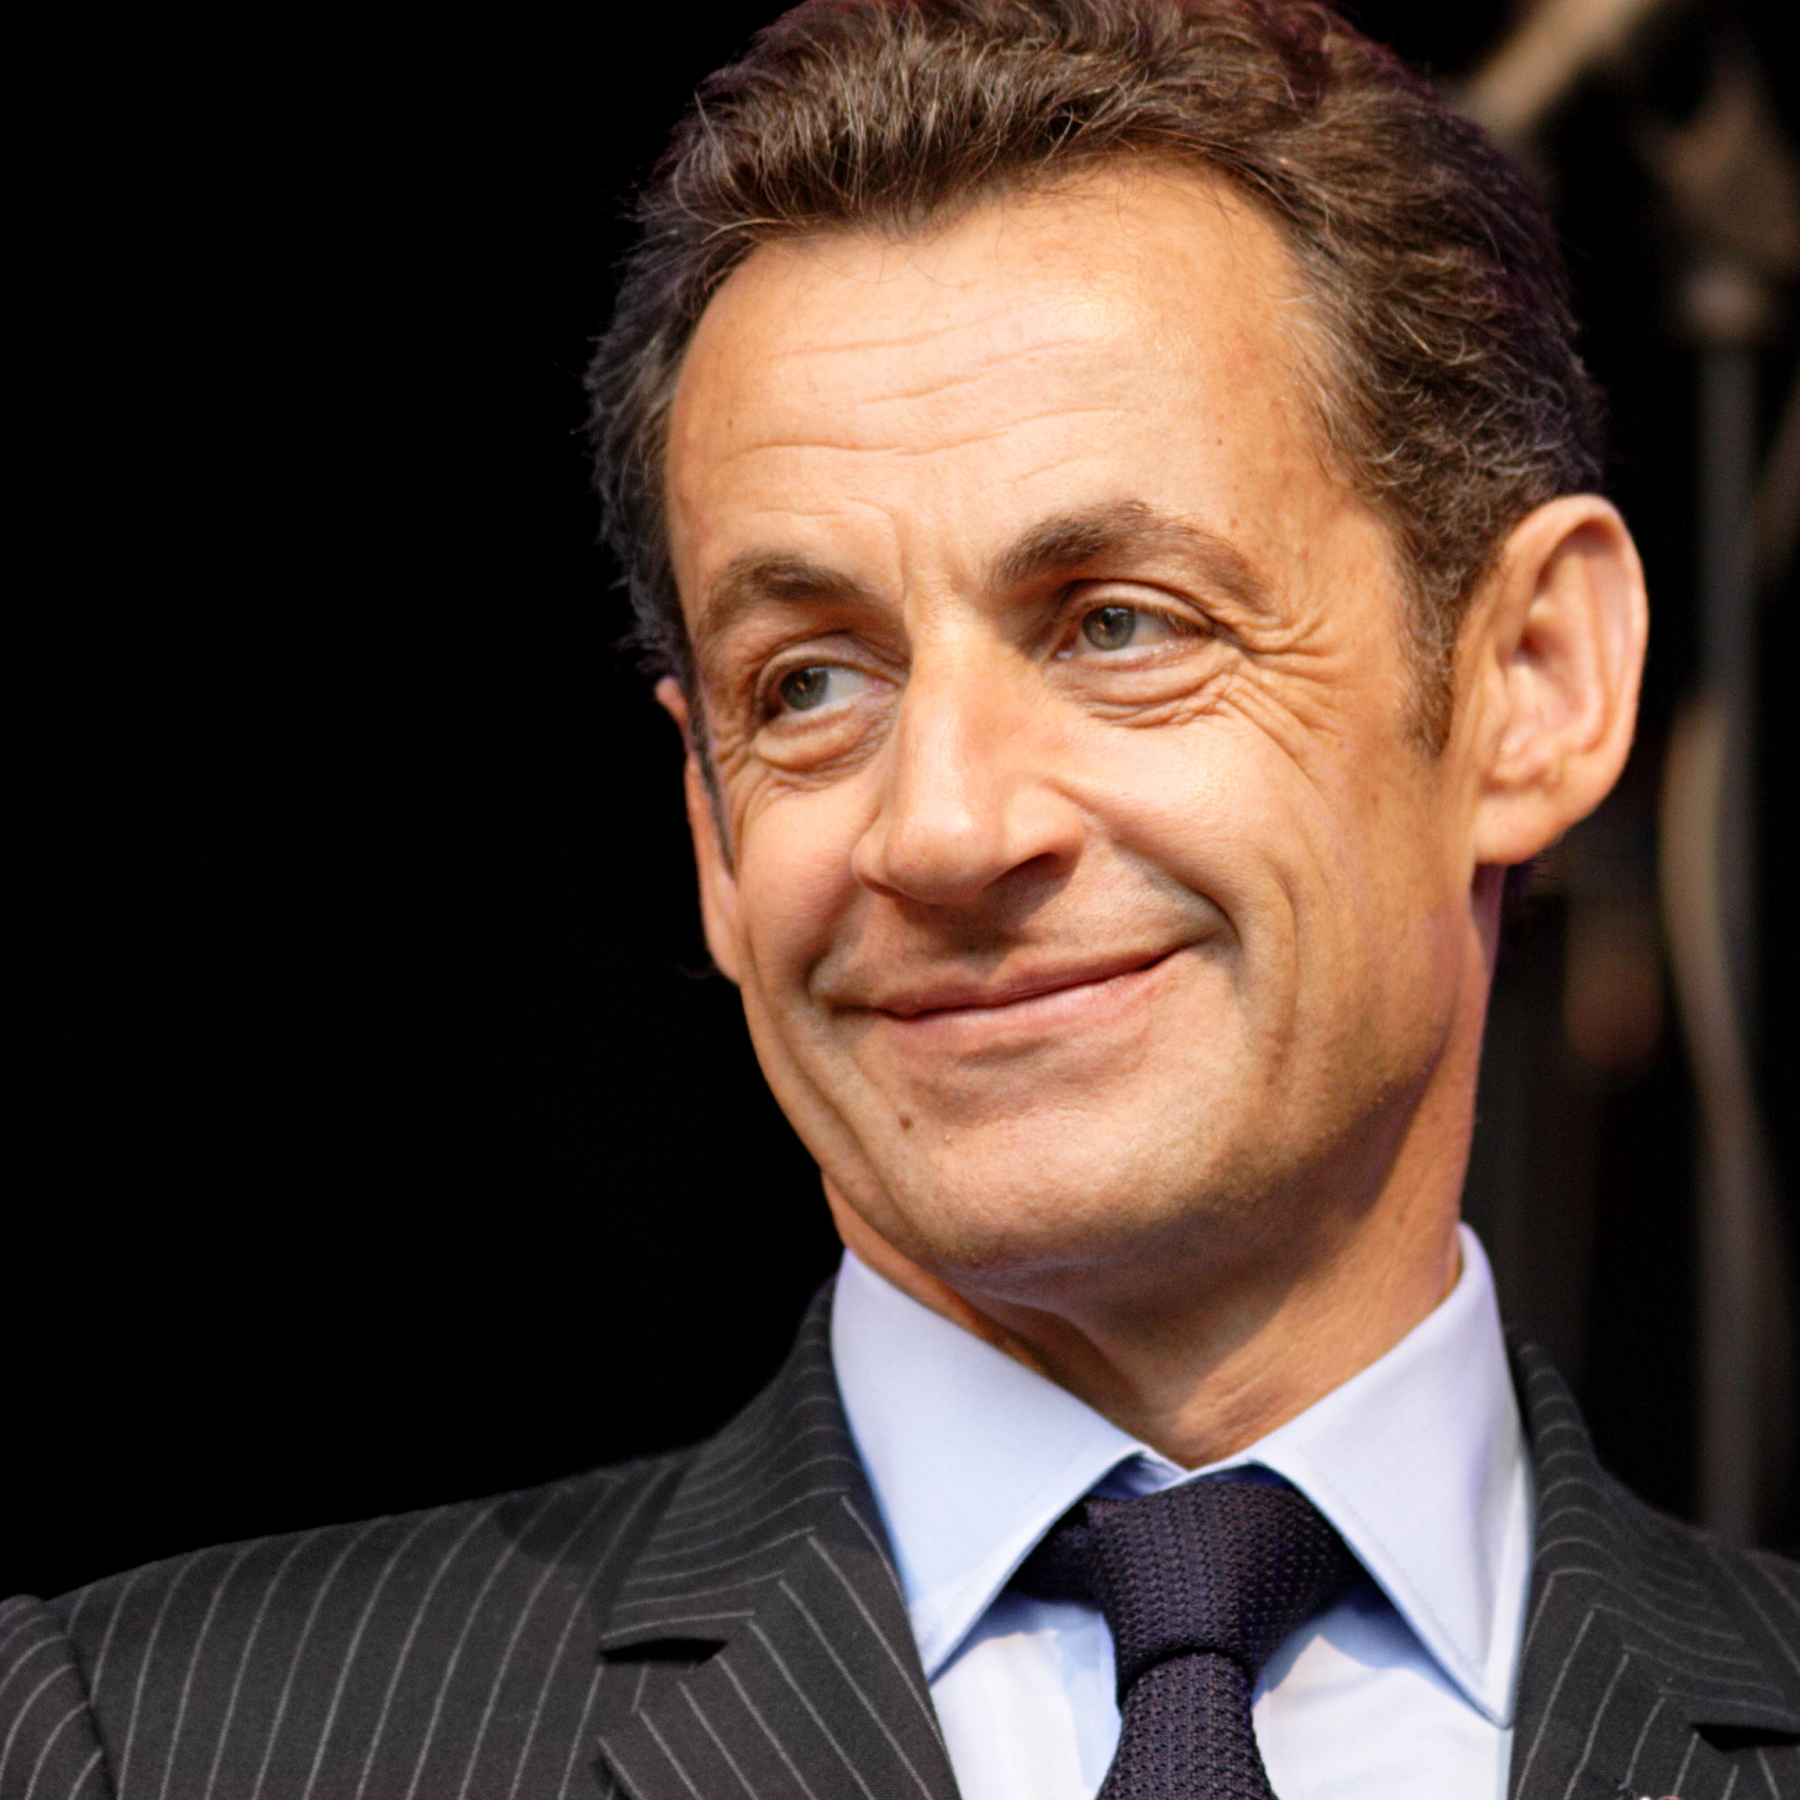 File:Nicolas SARKOZY (2008).jpg - Wikipedia, the free encyclopedia